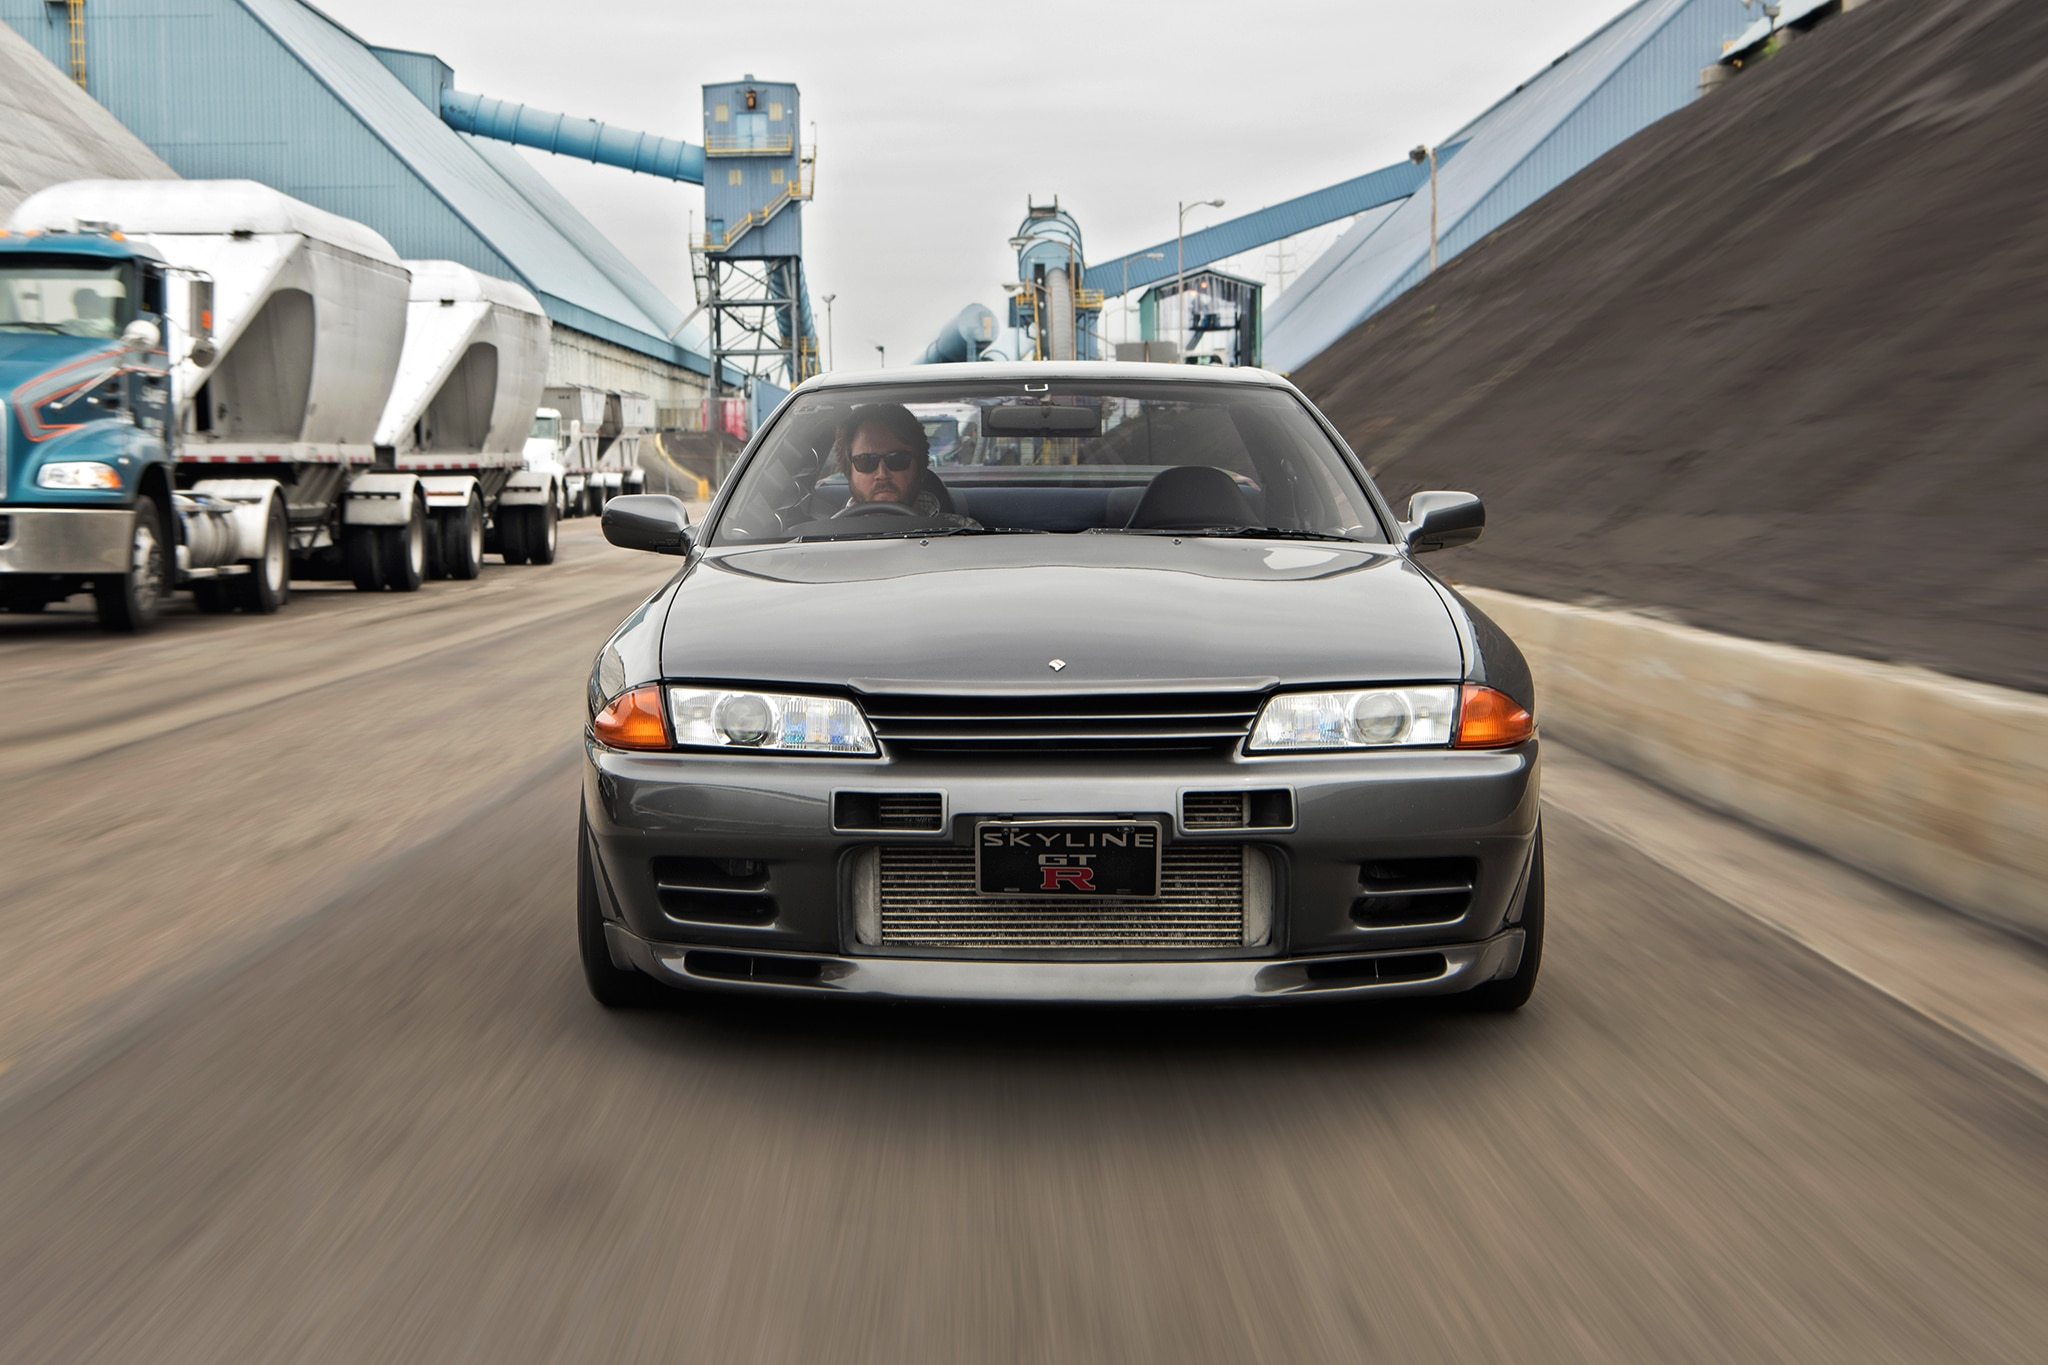 2017 Nissan Gt R Msrp >> Collectible Classic: 1989-1994 Nissan Skyline GT-R R32